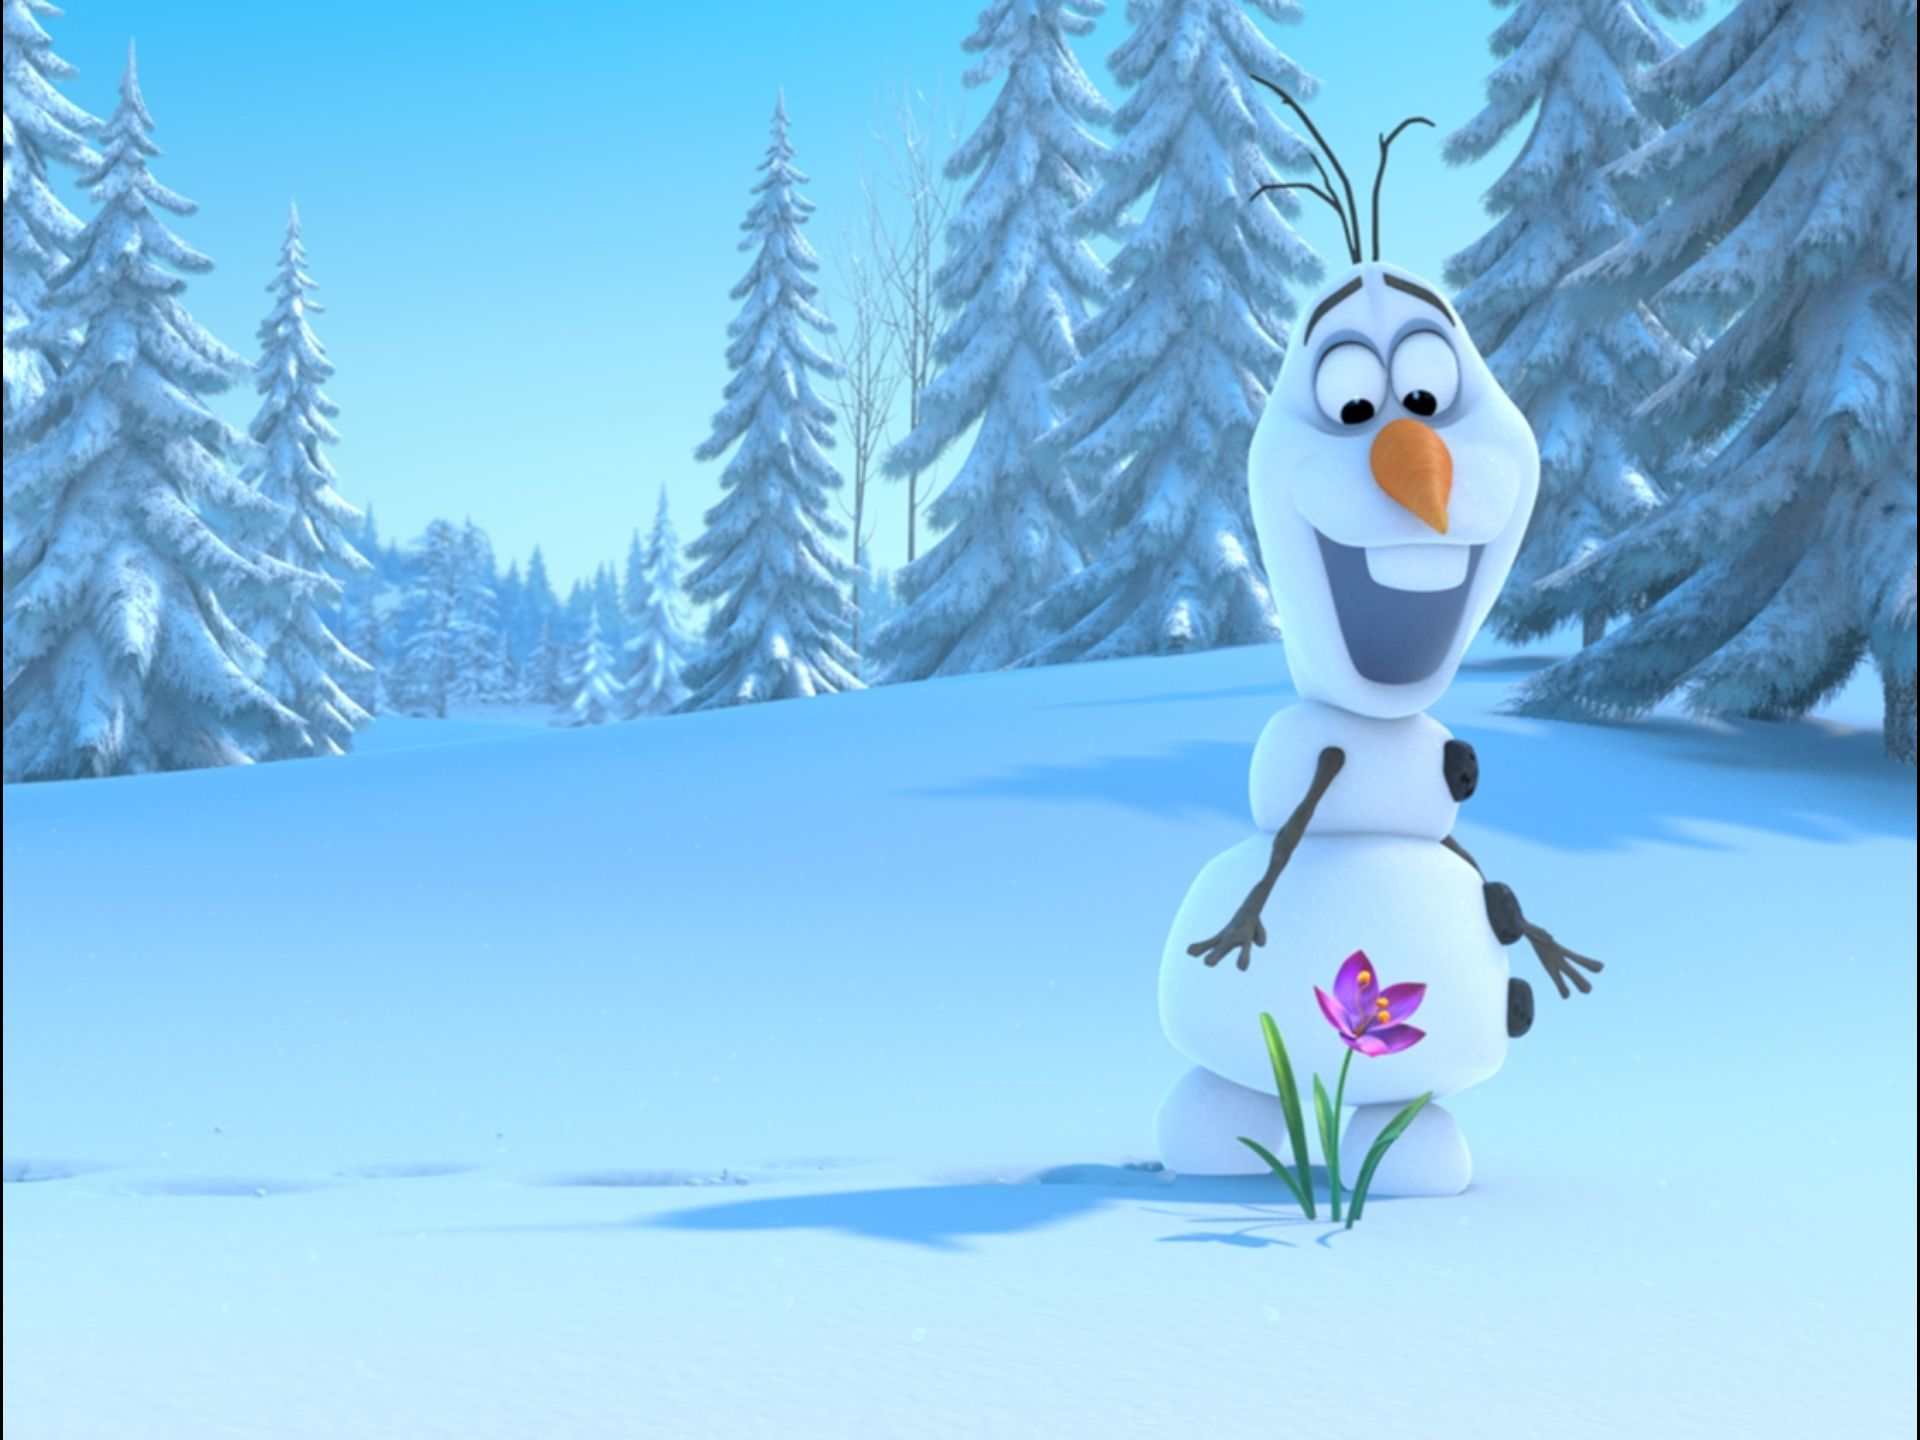 First Images from Disney's Animated Film FROZEN